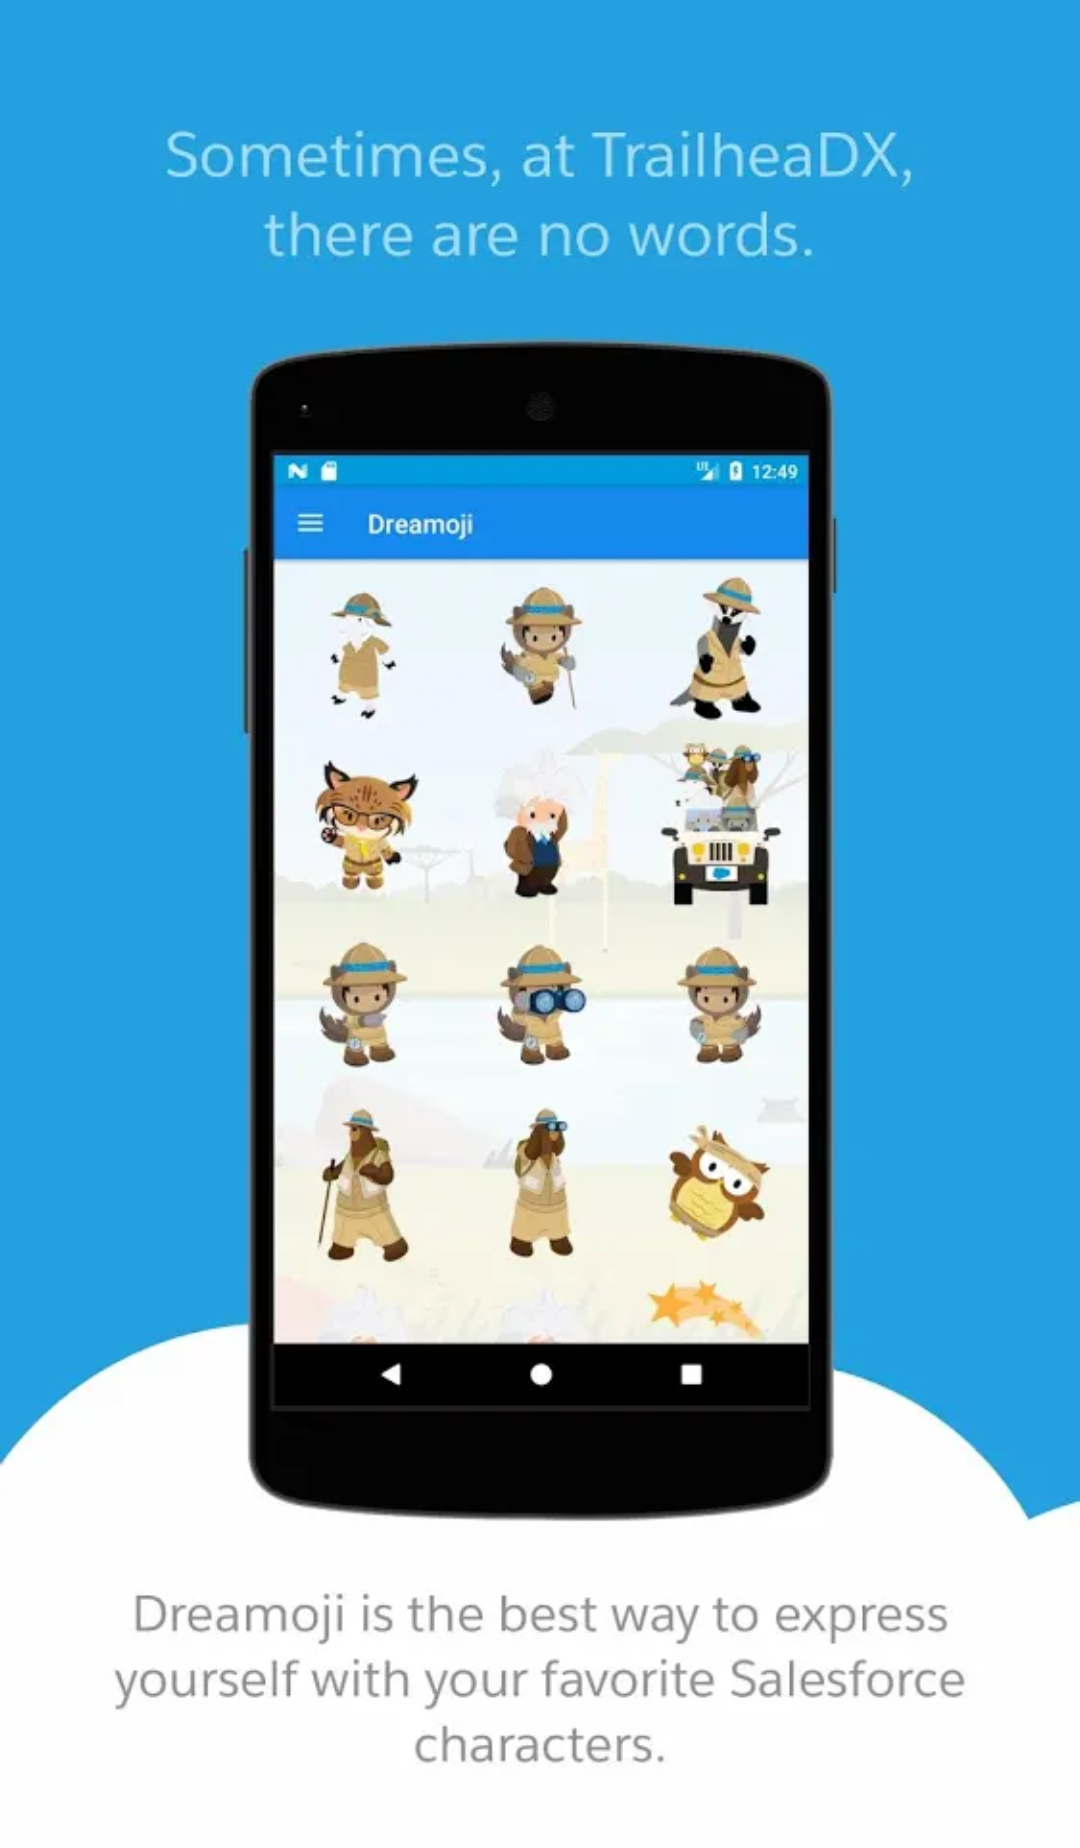 Salesforce Dreamoji App